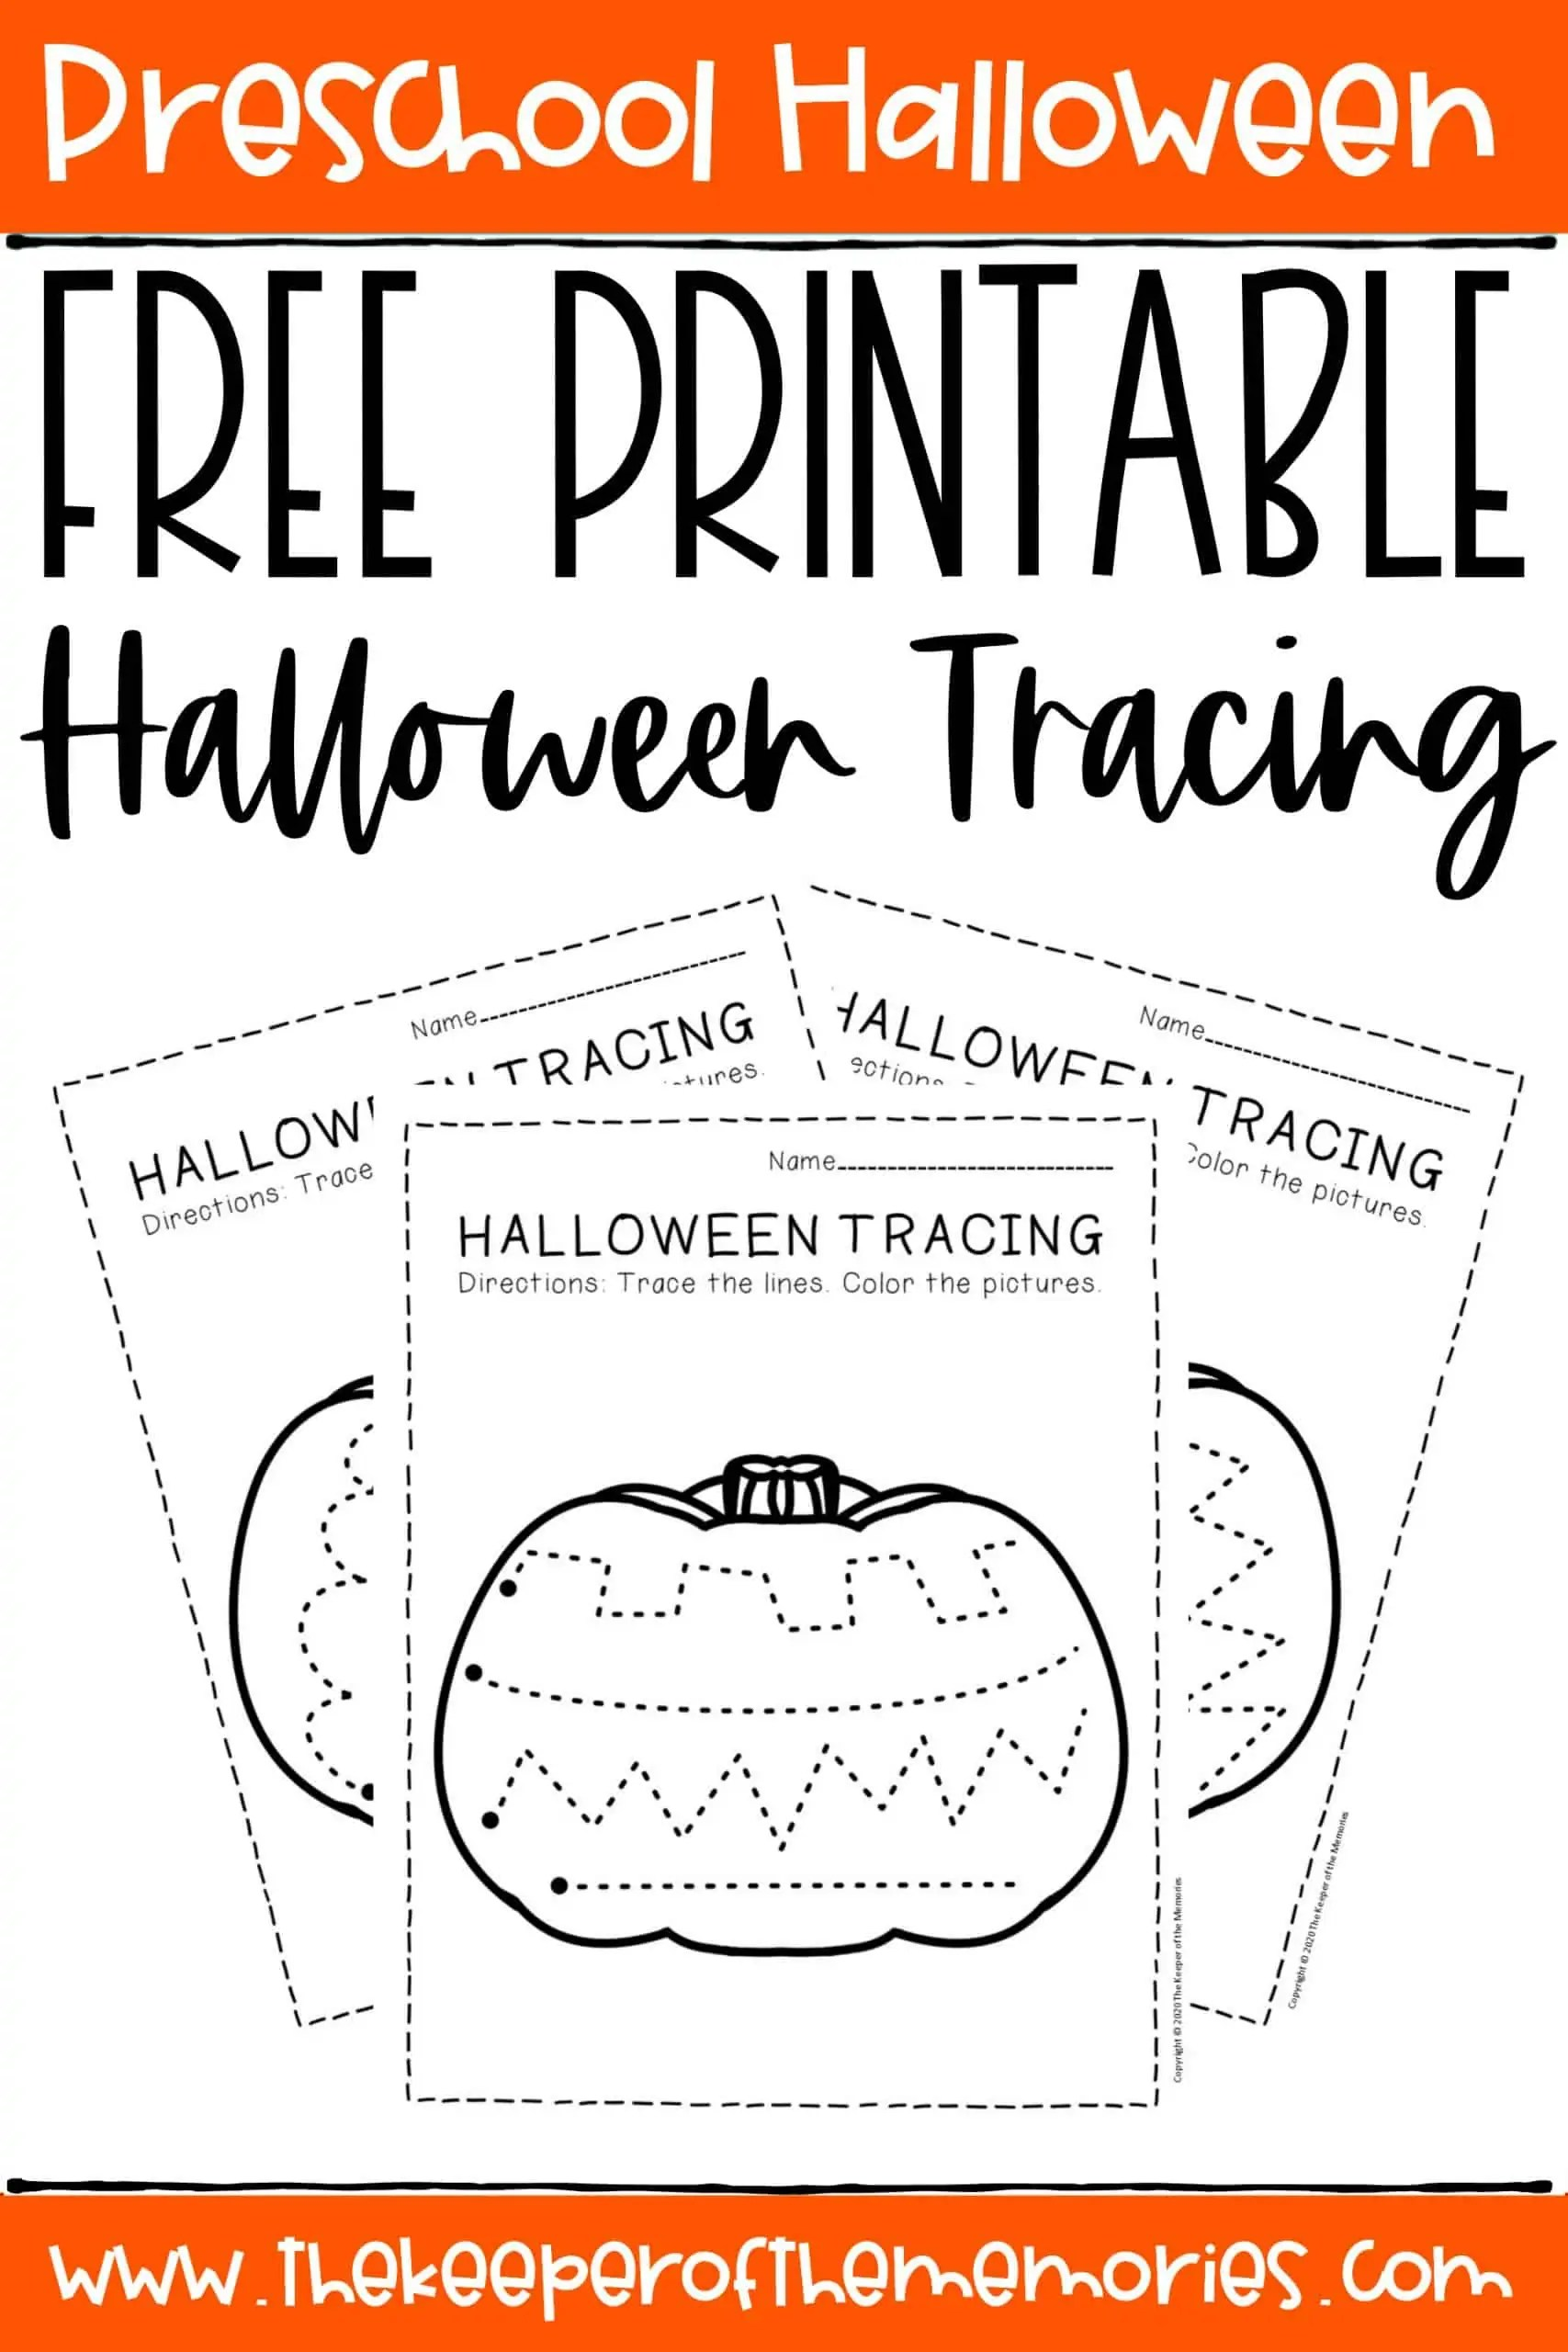 Free Printable Tracing Halloween Preschool Worksheets